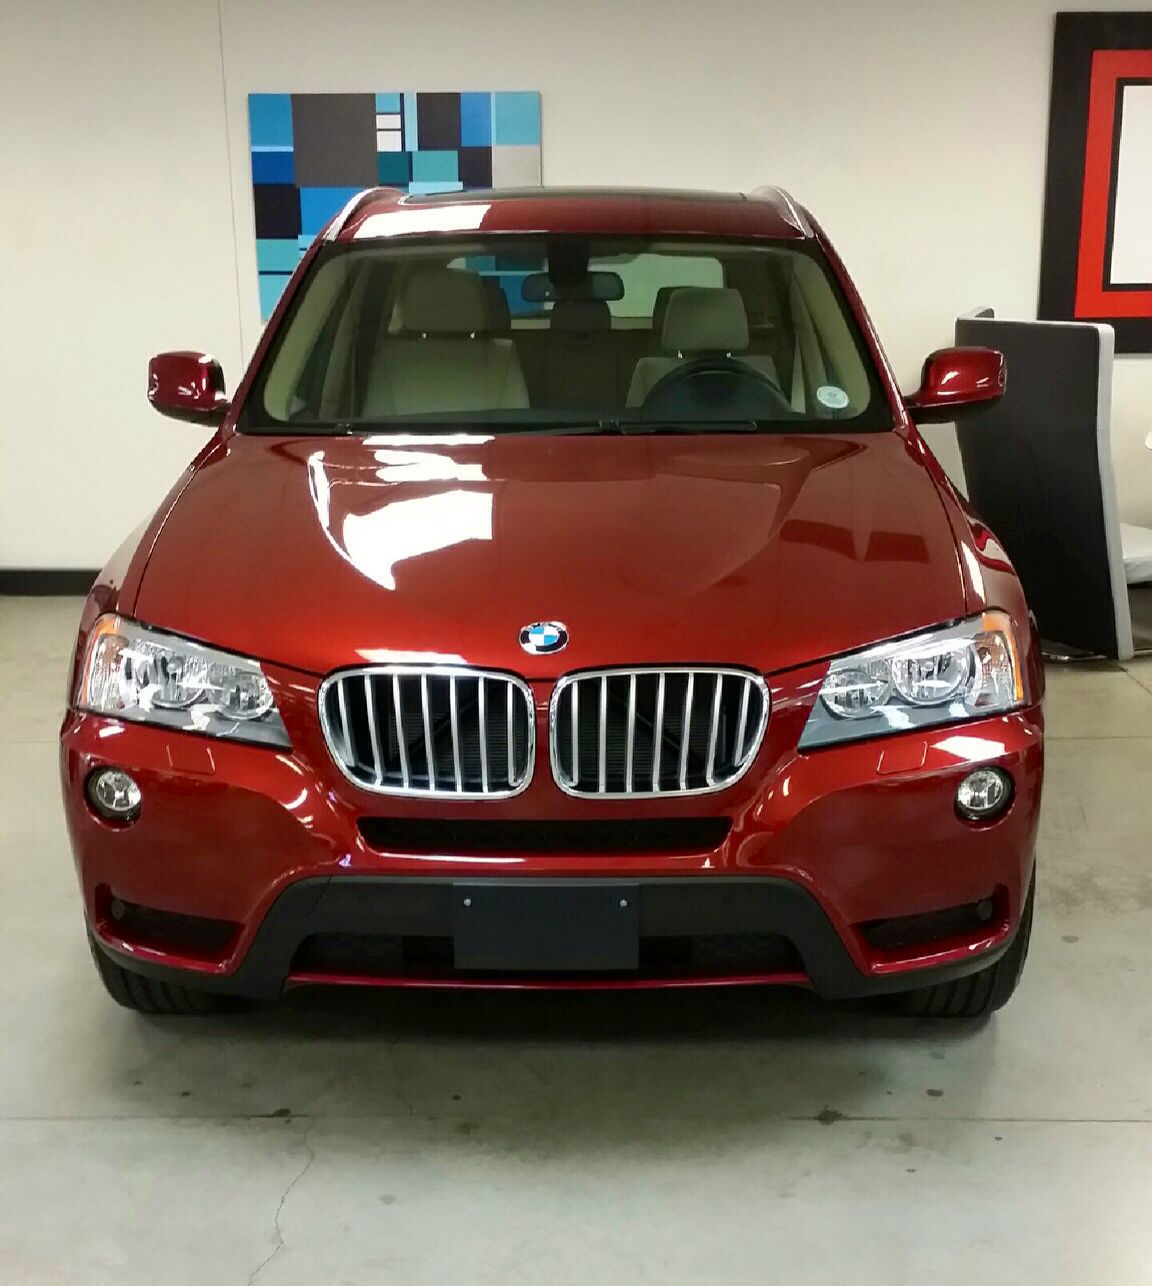 2014 BMW X3 In Vermillion Red